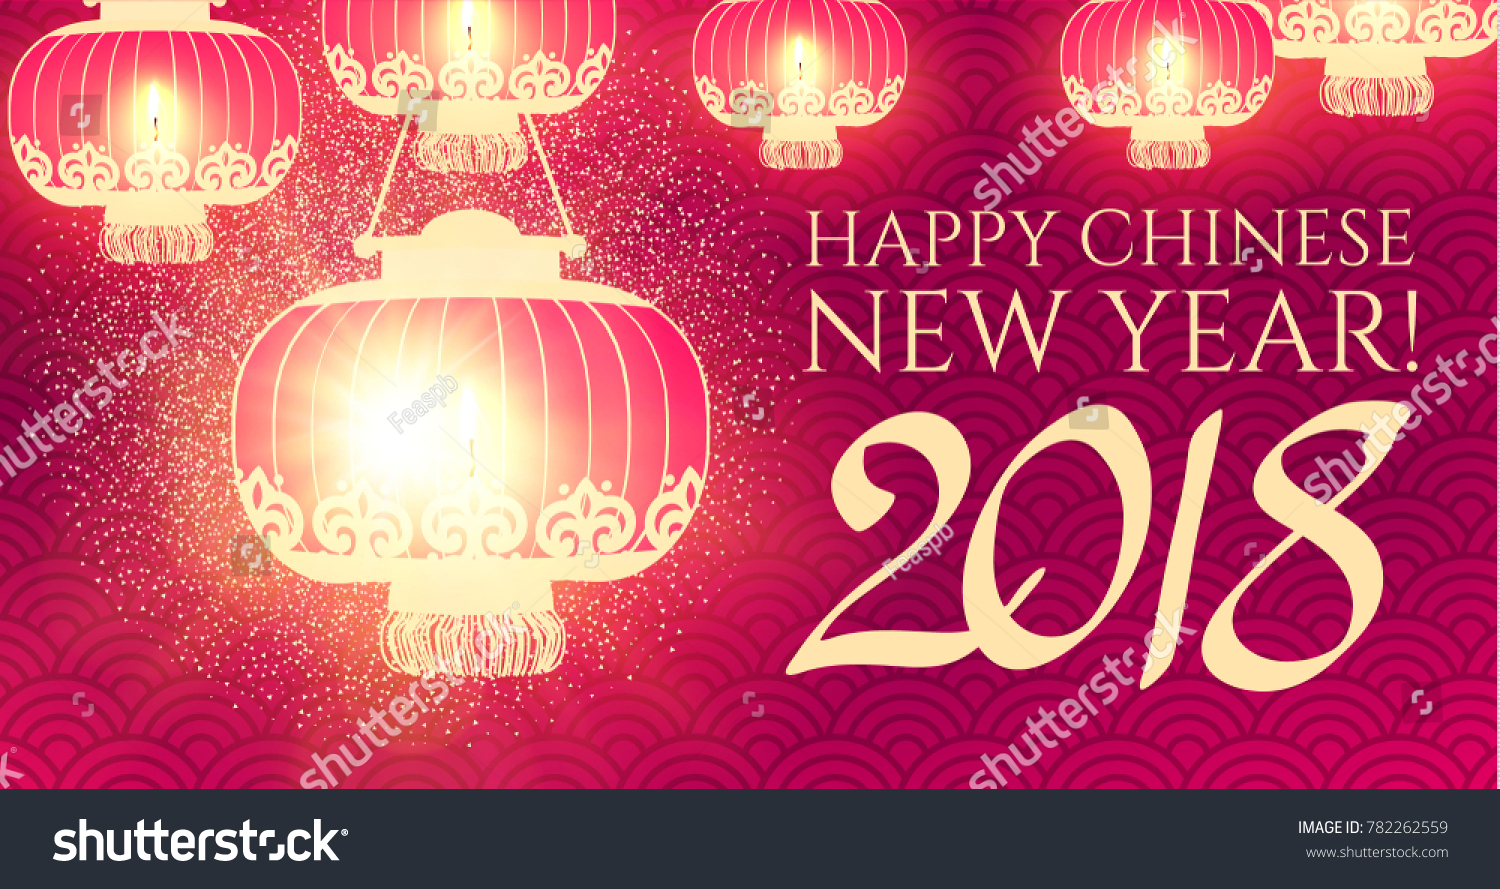 happy chinese 2018 new year background with lanterns and lights vector illustration